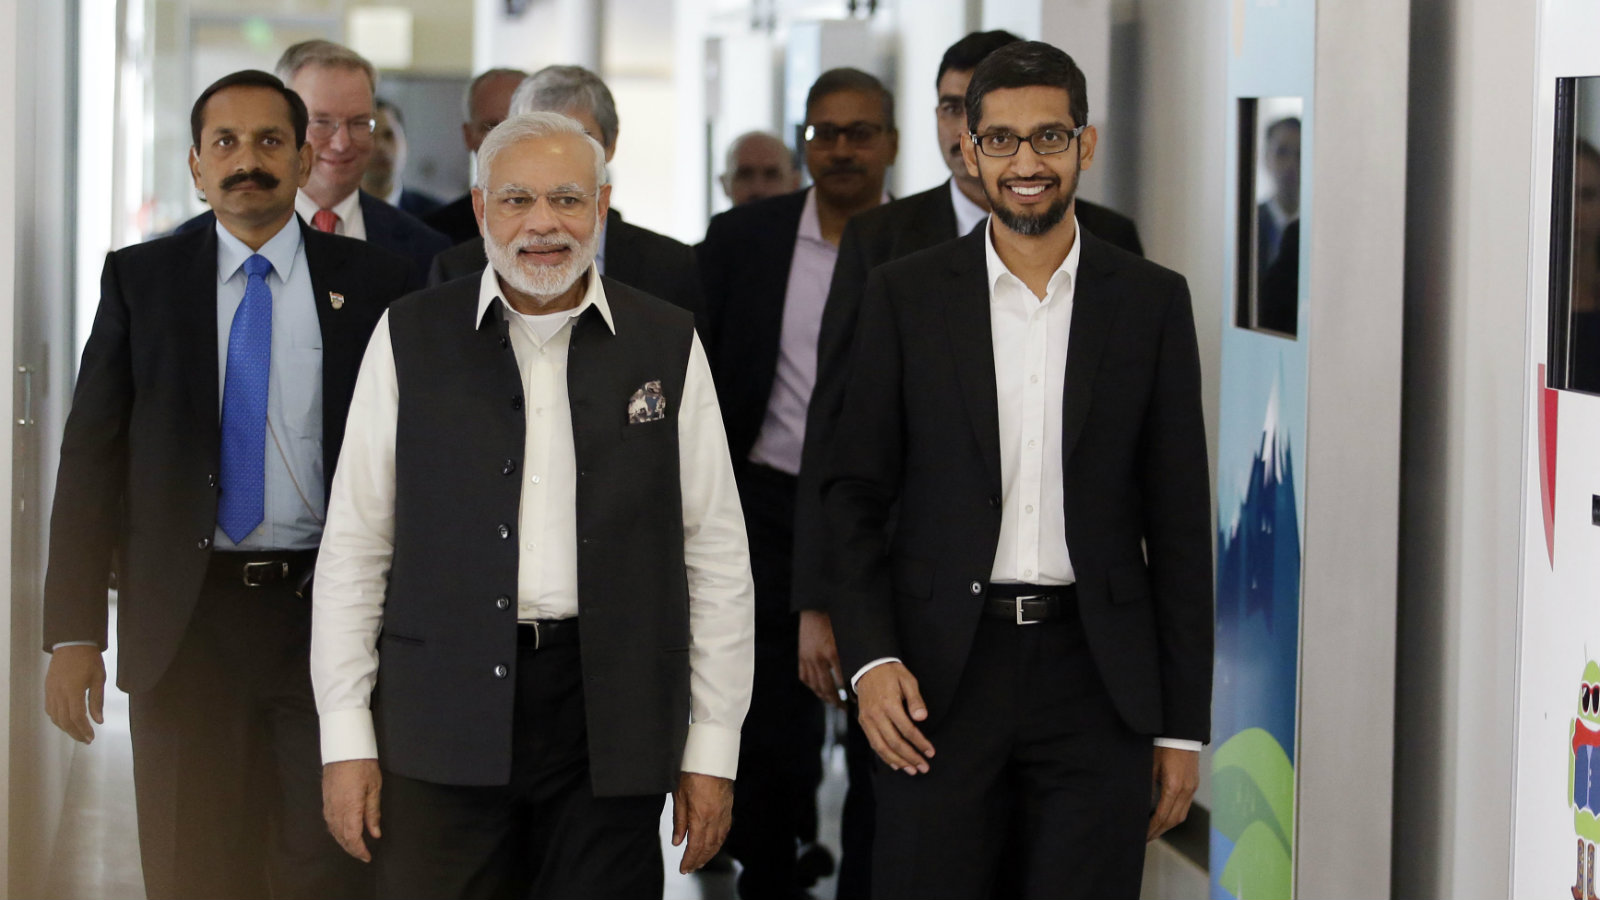 Prime Minister of India Narendra Modi, center, walks the hallways of Google headquarters alongside Google executive Sundar Pichai, at right, Sunday, Sept. 27, 2015, in Mountain View , Calif. After meeting with Facebook CEO Mark Zuckerberg at Facebook headquarters earlier, Modi scheduled meetings with the CEOs of Apple and Google during his whirlwind tour of Silicon Valley.